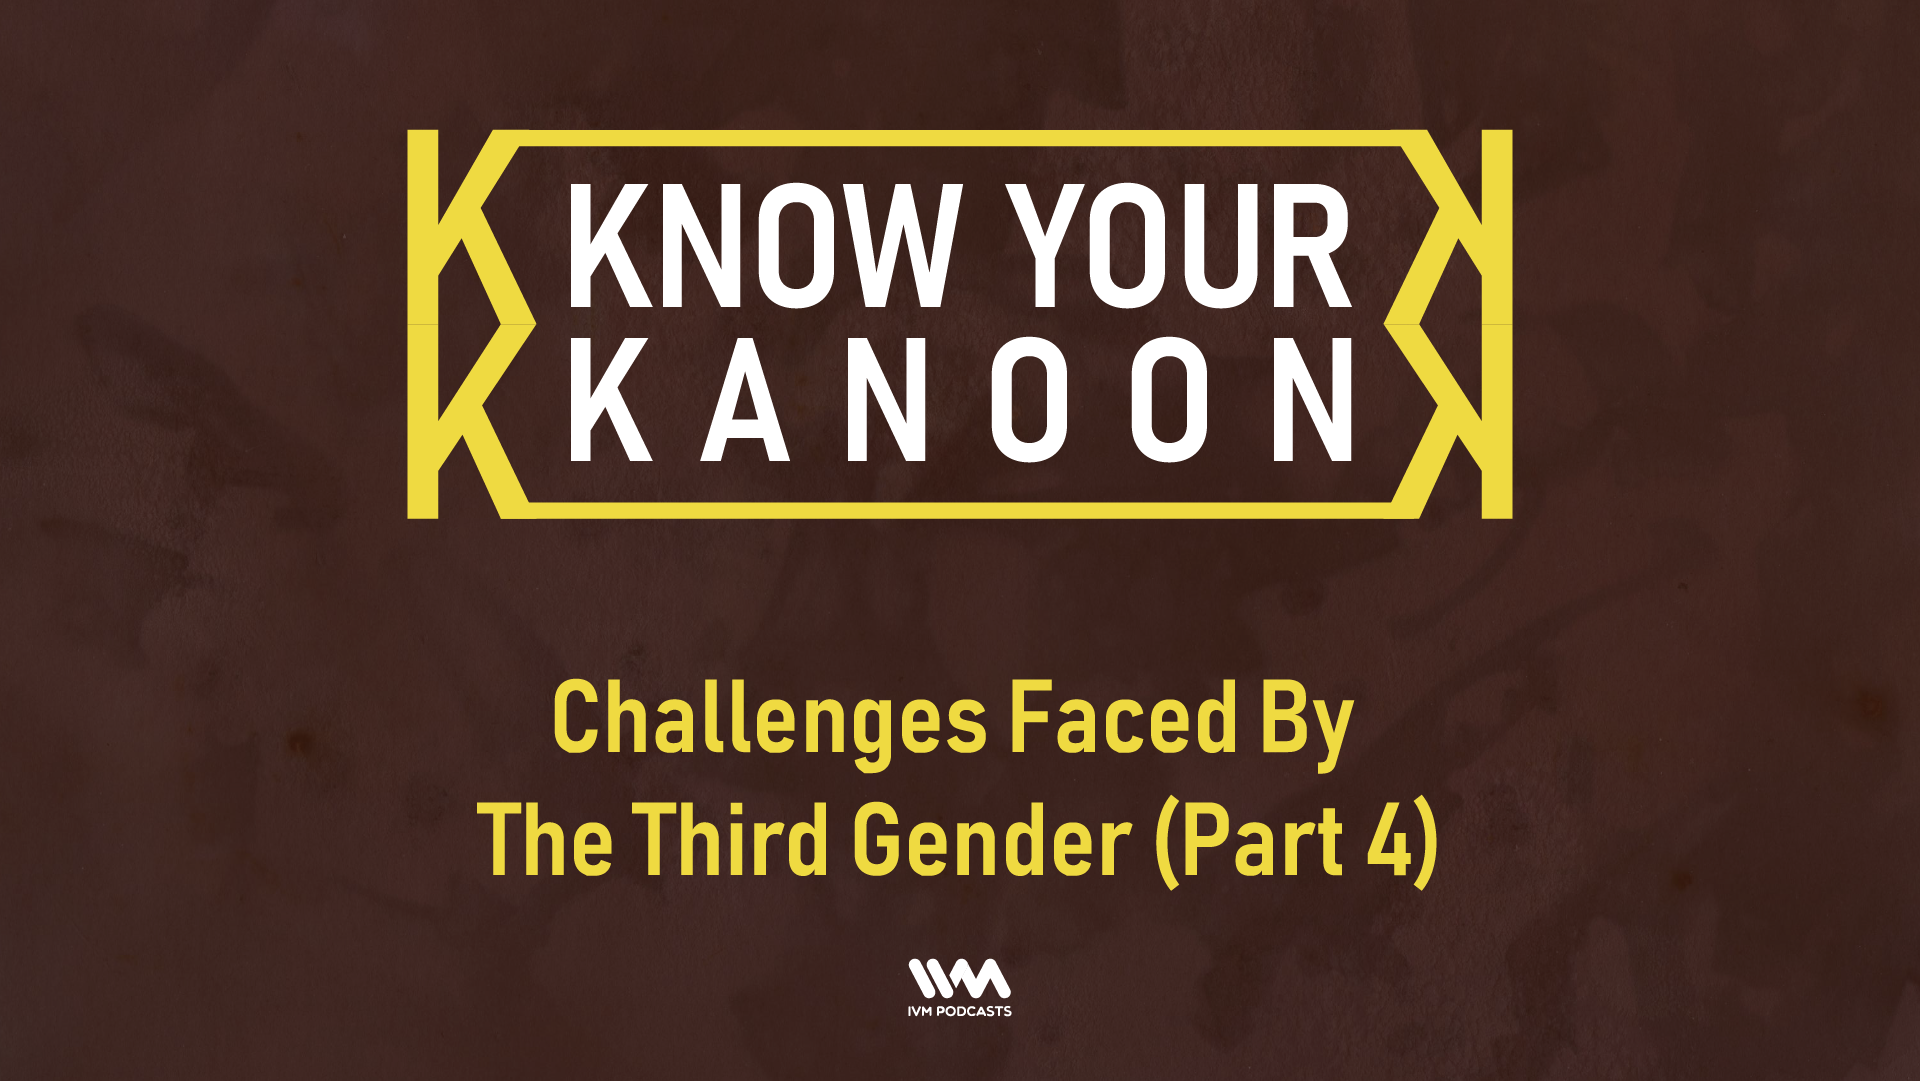 KnowYourKanoonEpisode15.png